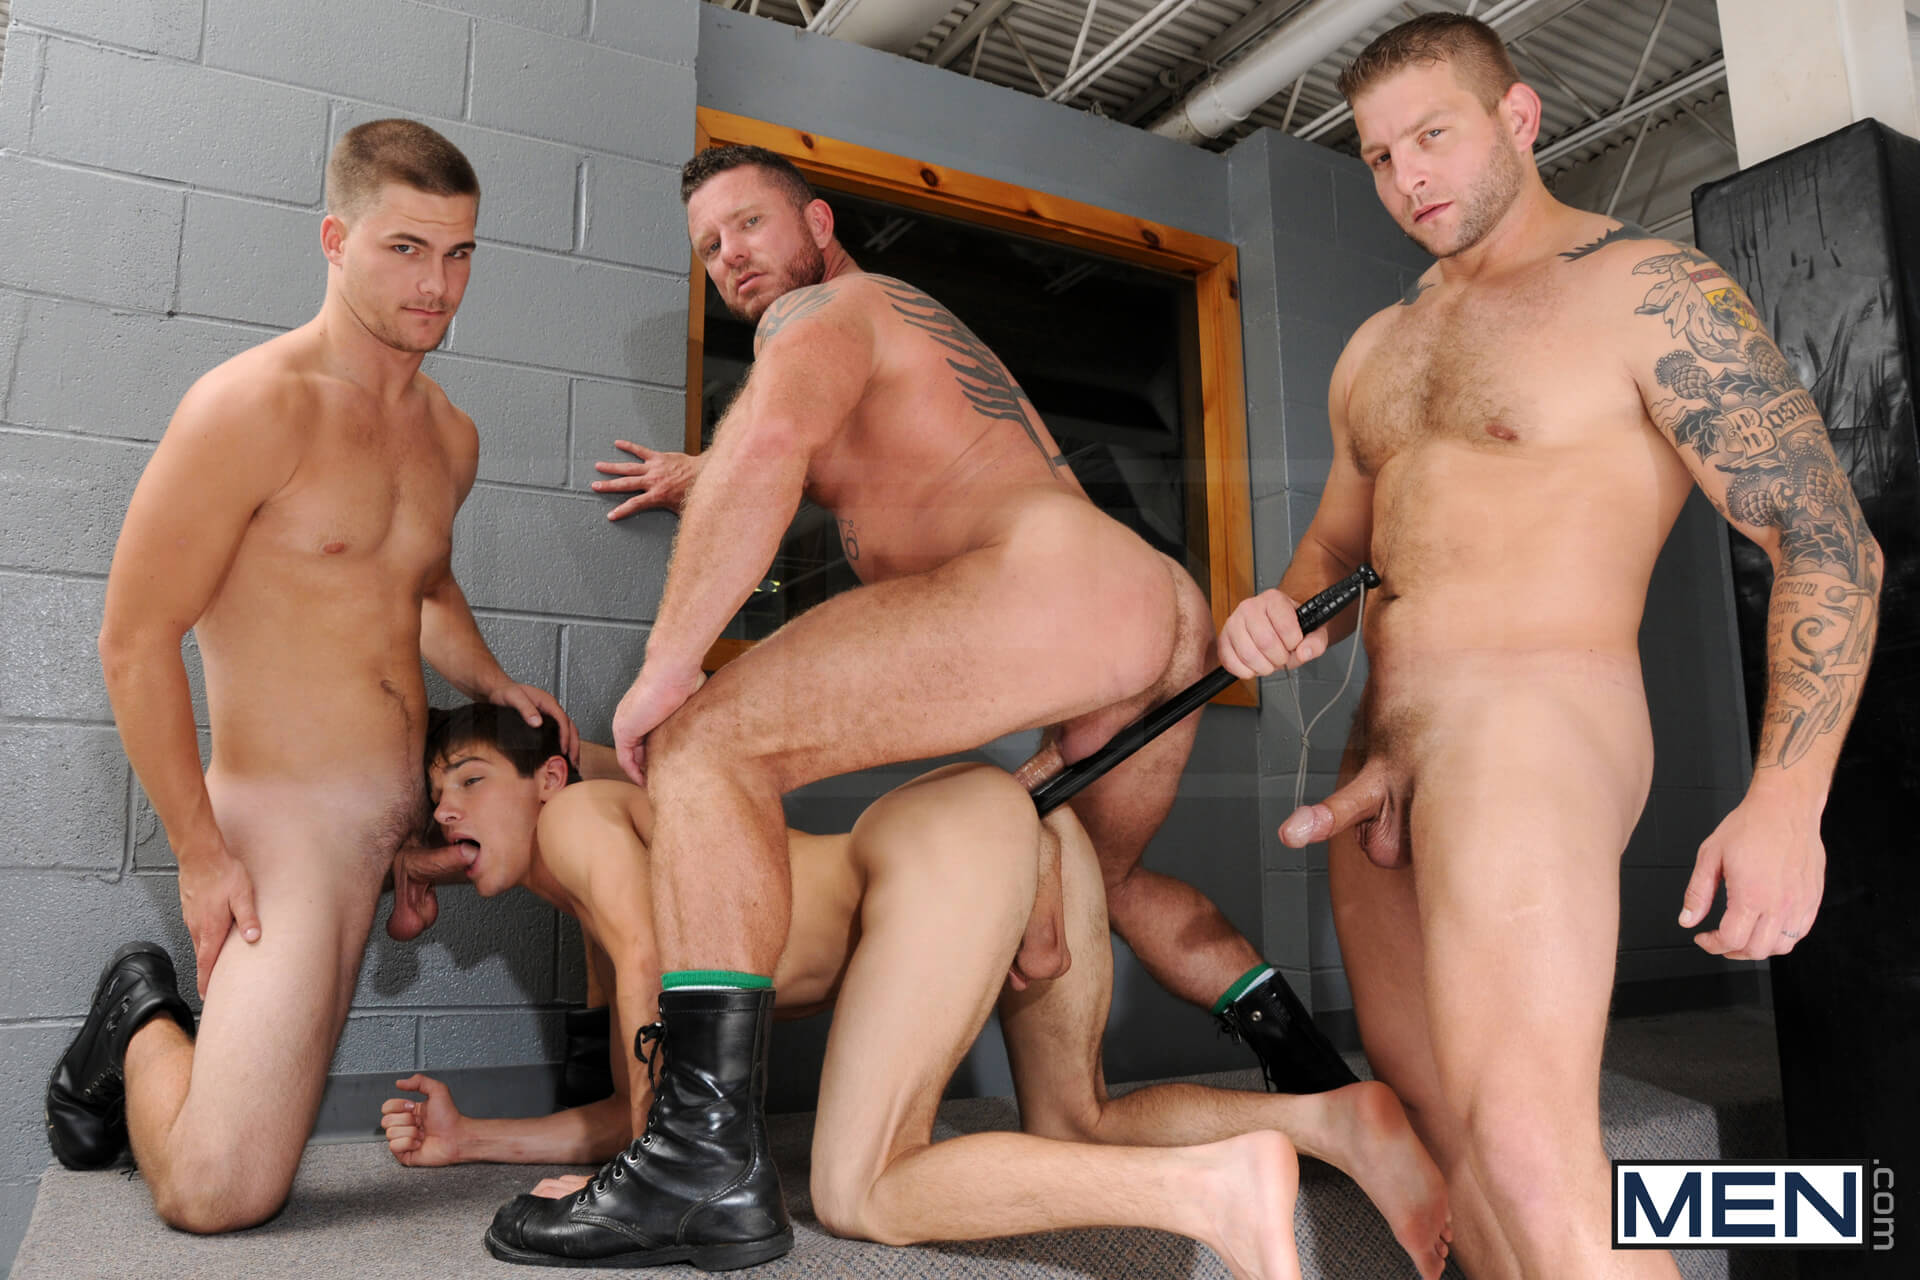 MEN.COM » Jizz Orgy » Prison Shower Part 3 » Charlie Harding » Colby Jansen » Jimmy Johnson » Johnny Rapid